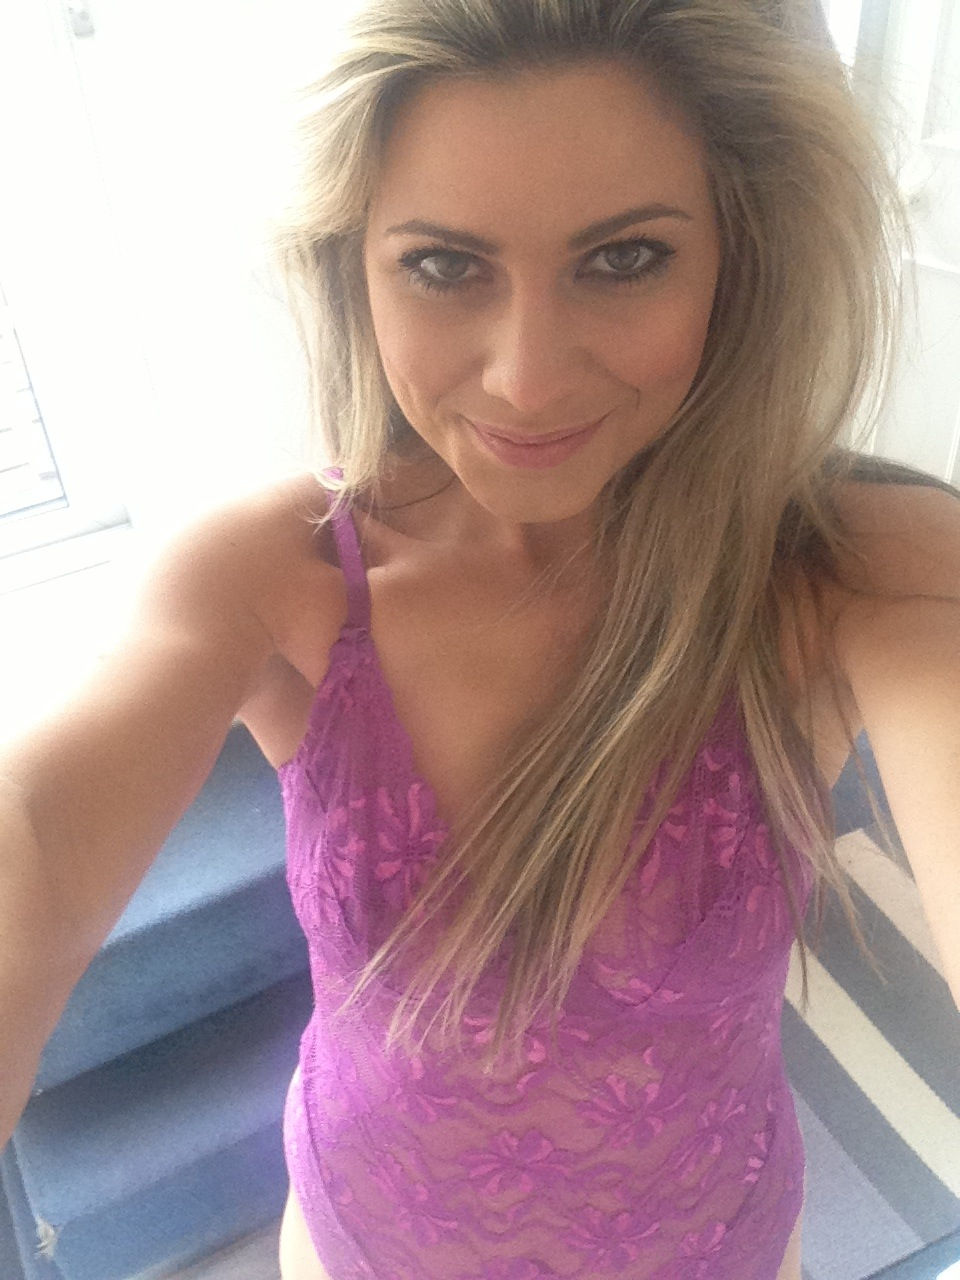 Kirsty Duffy Nude Leaked The Fappening (13 Photos)